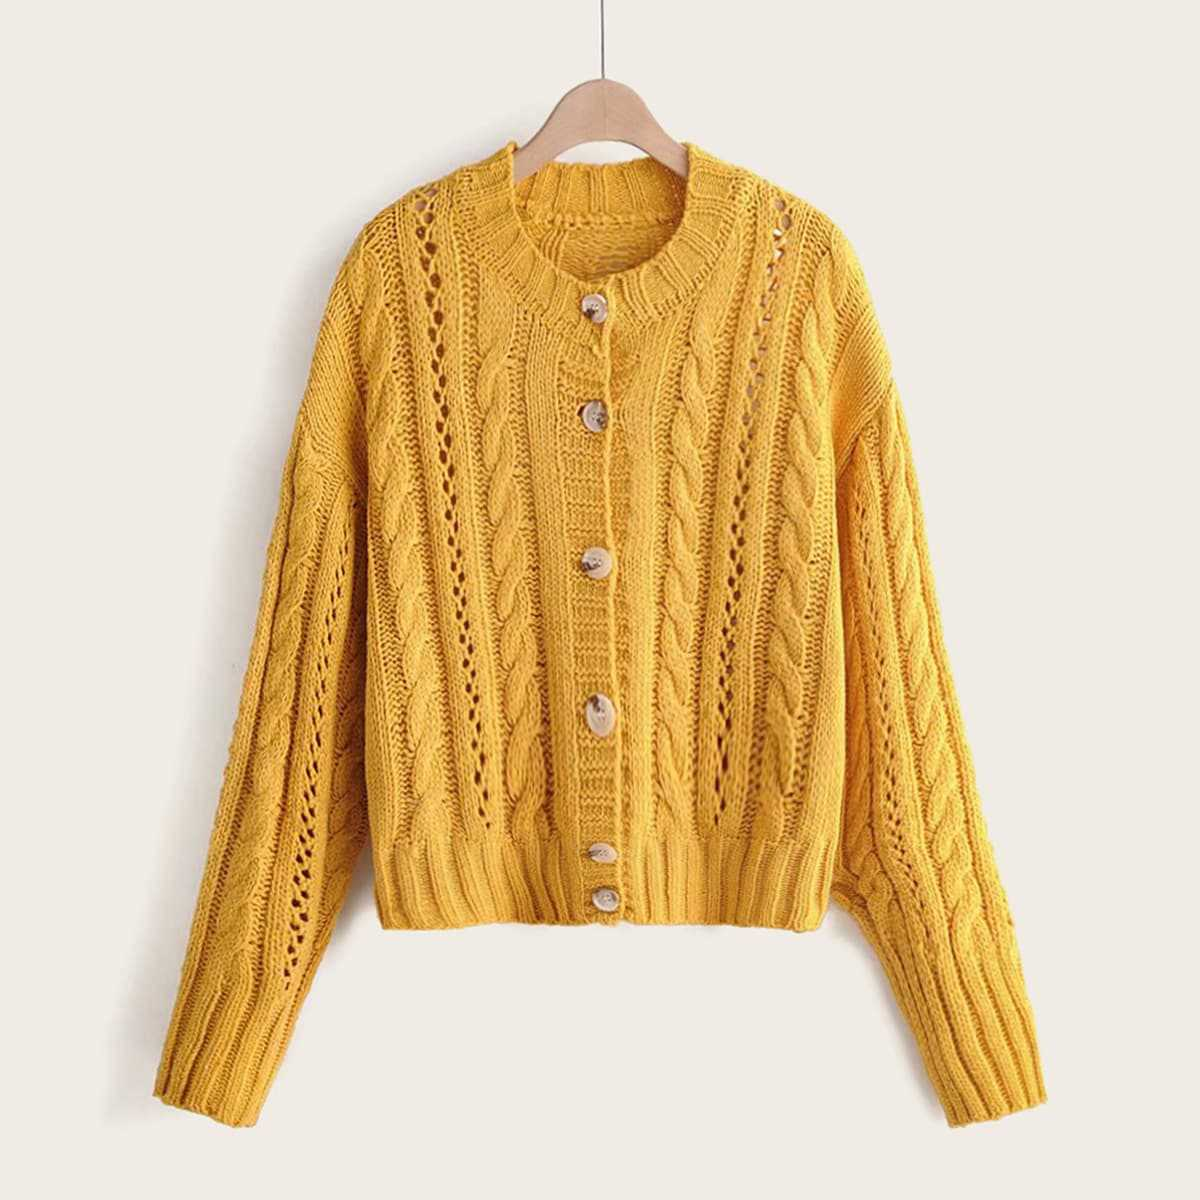 Twist Cable Knitted Sweater in Yellow by ROMWE on GOOFASH